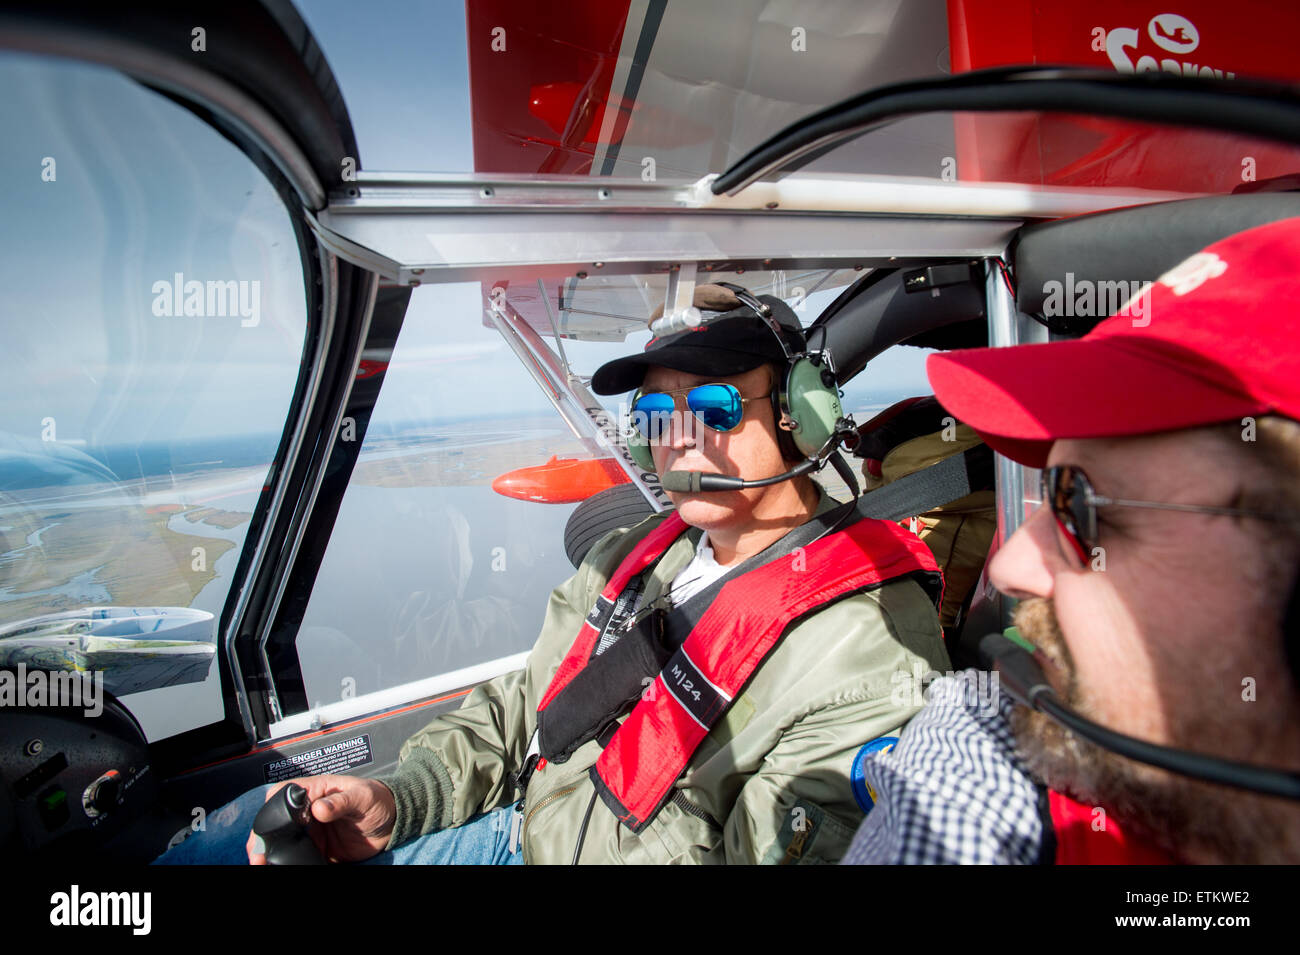 Male pilots in seaplane flying over Georgia, USA - Stock Image